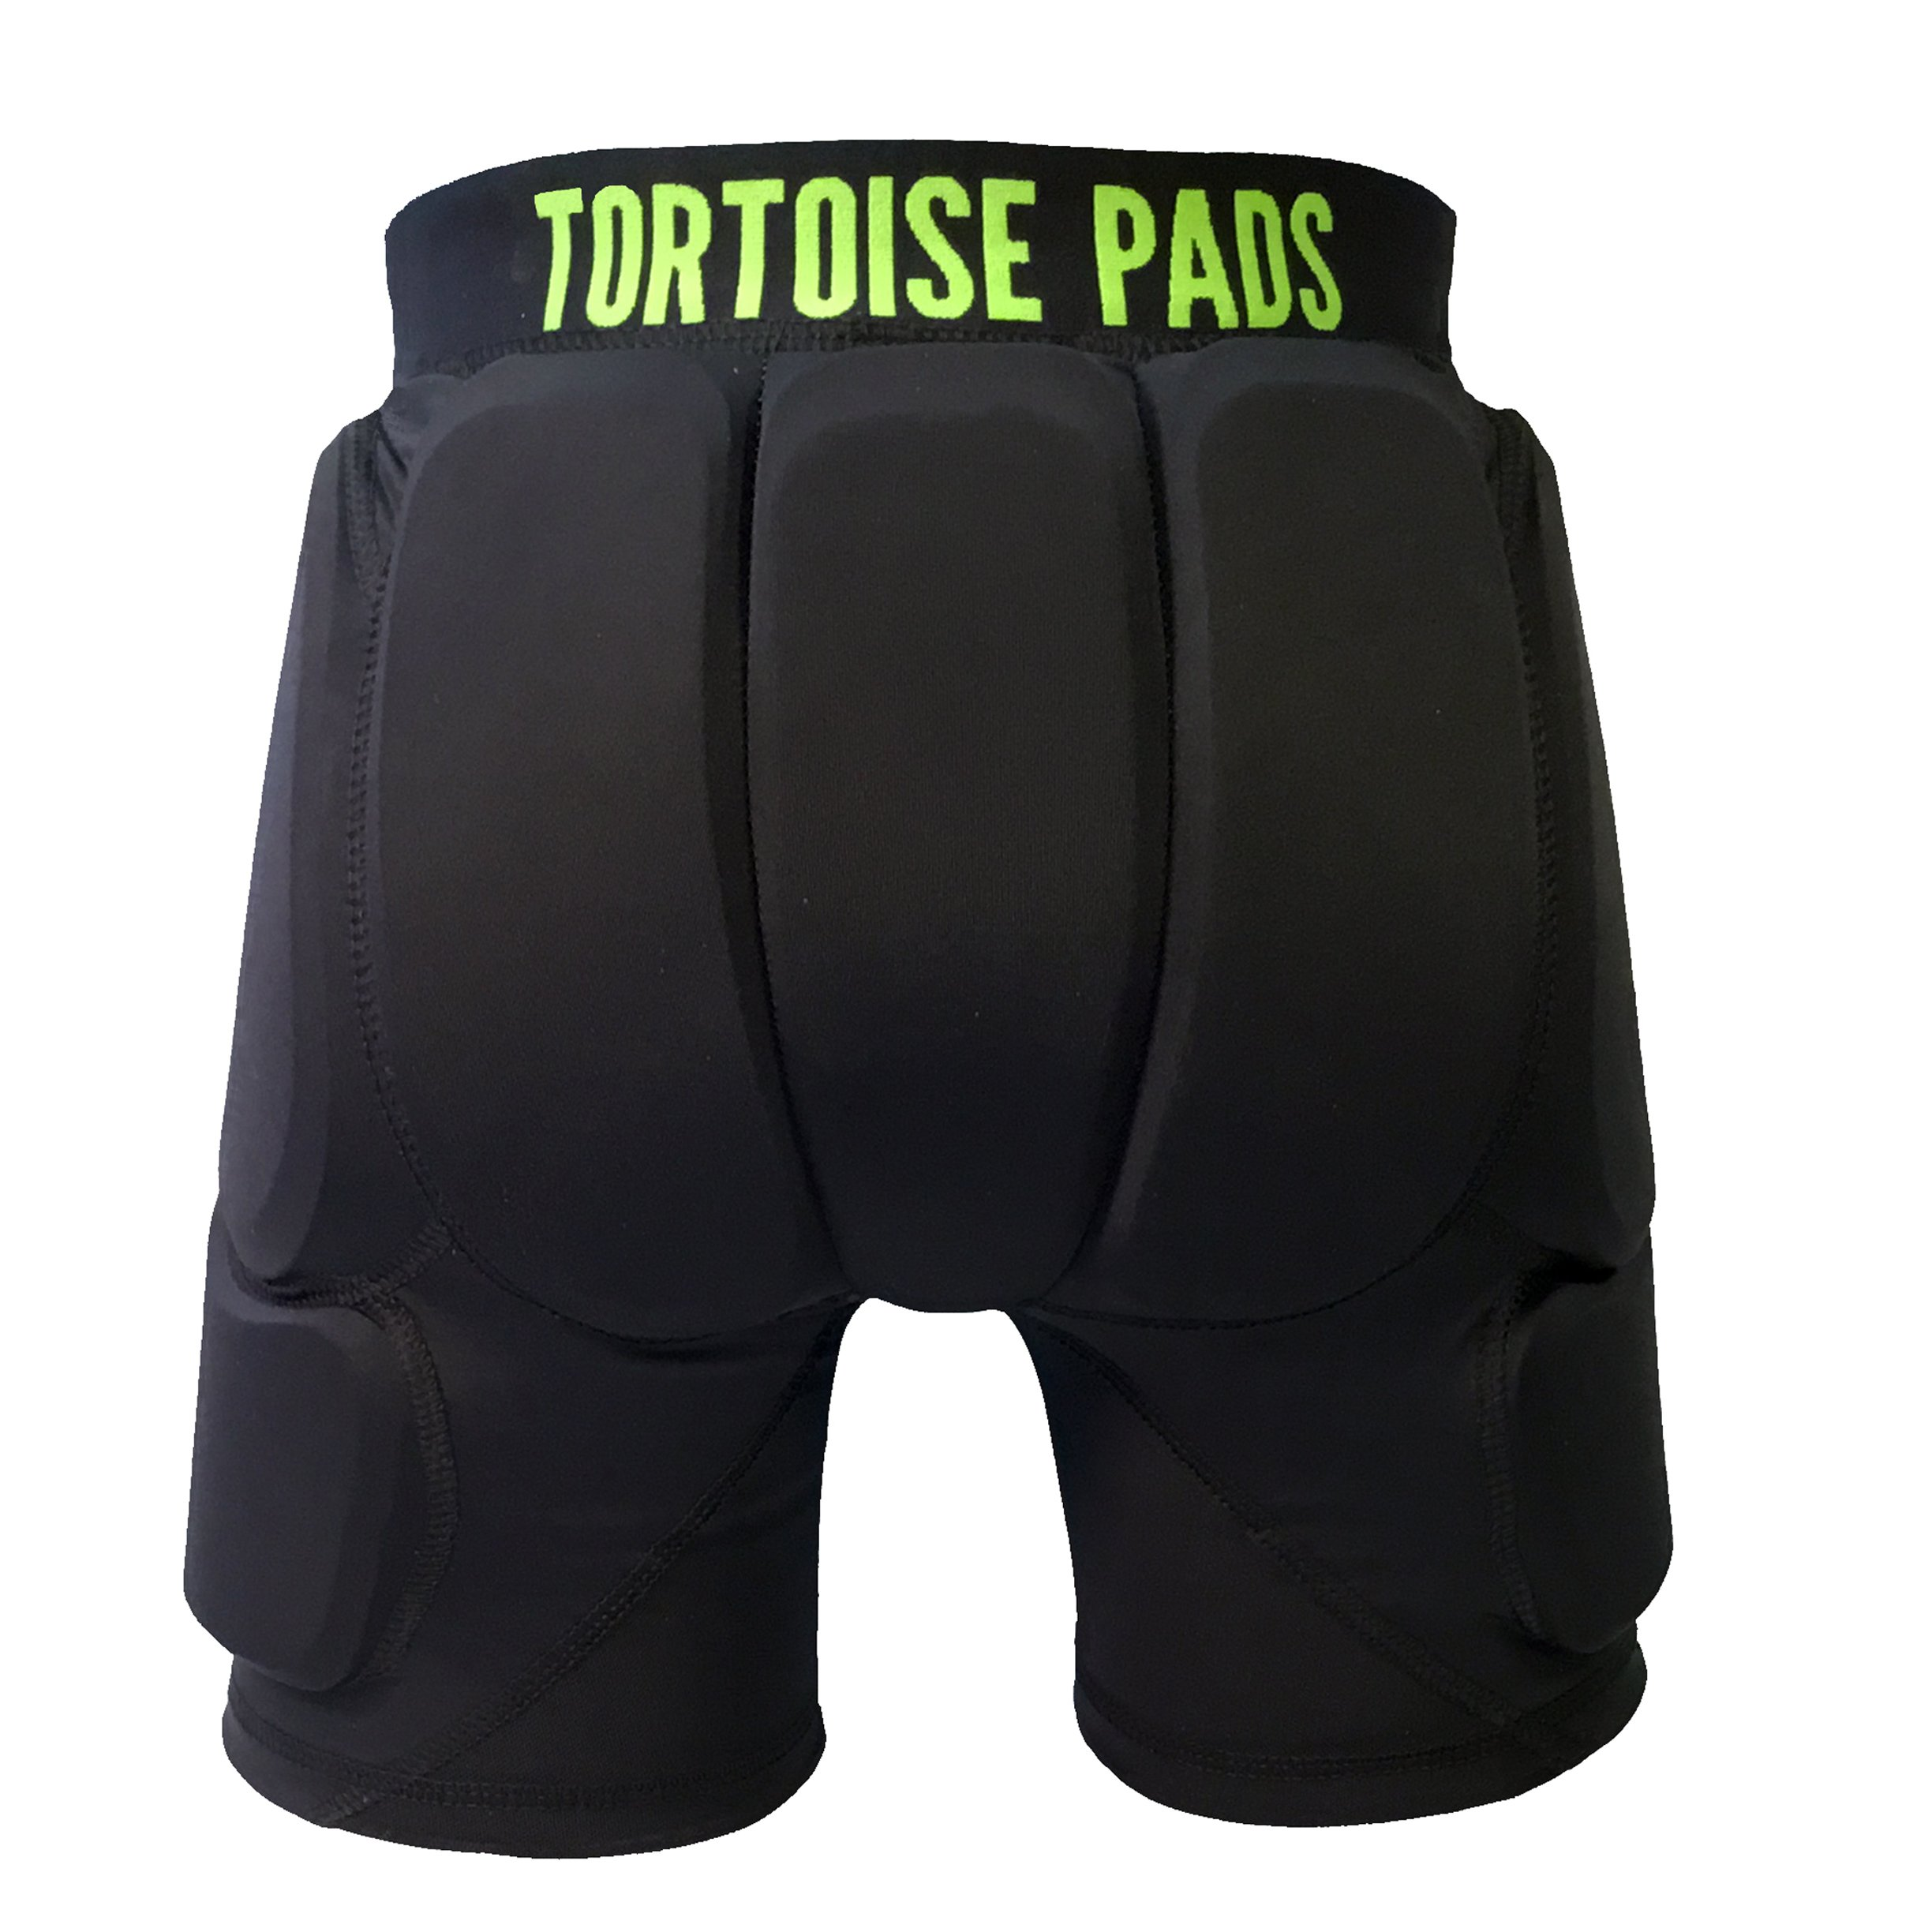 Tortoise Pads T2 Impact Protection Padded Shorts (Adult Small)